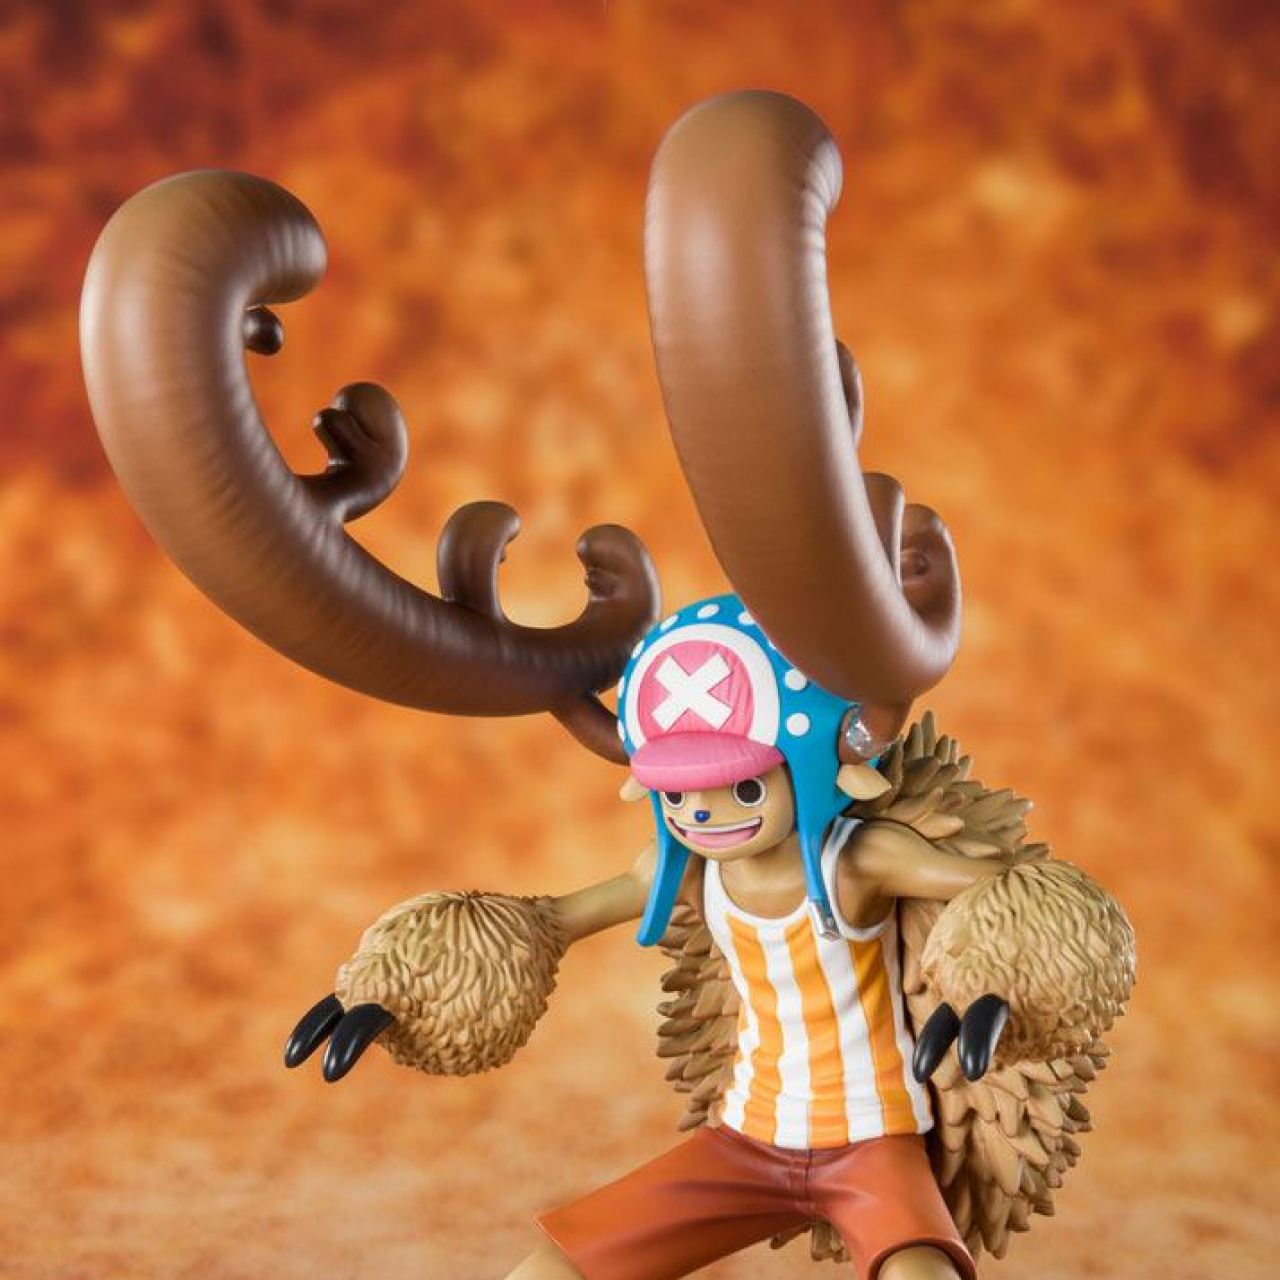 One Piece FiguartsZERO PVC Statue Cotton Candy Lover Chopper Horn Point Ver. 14 cm